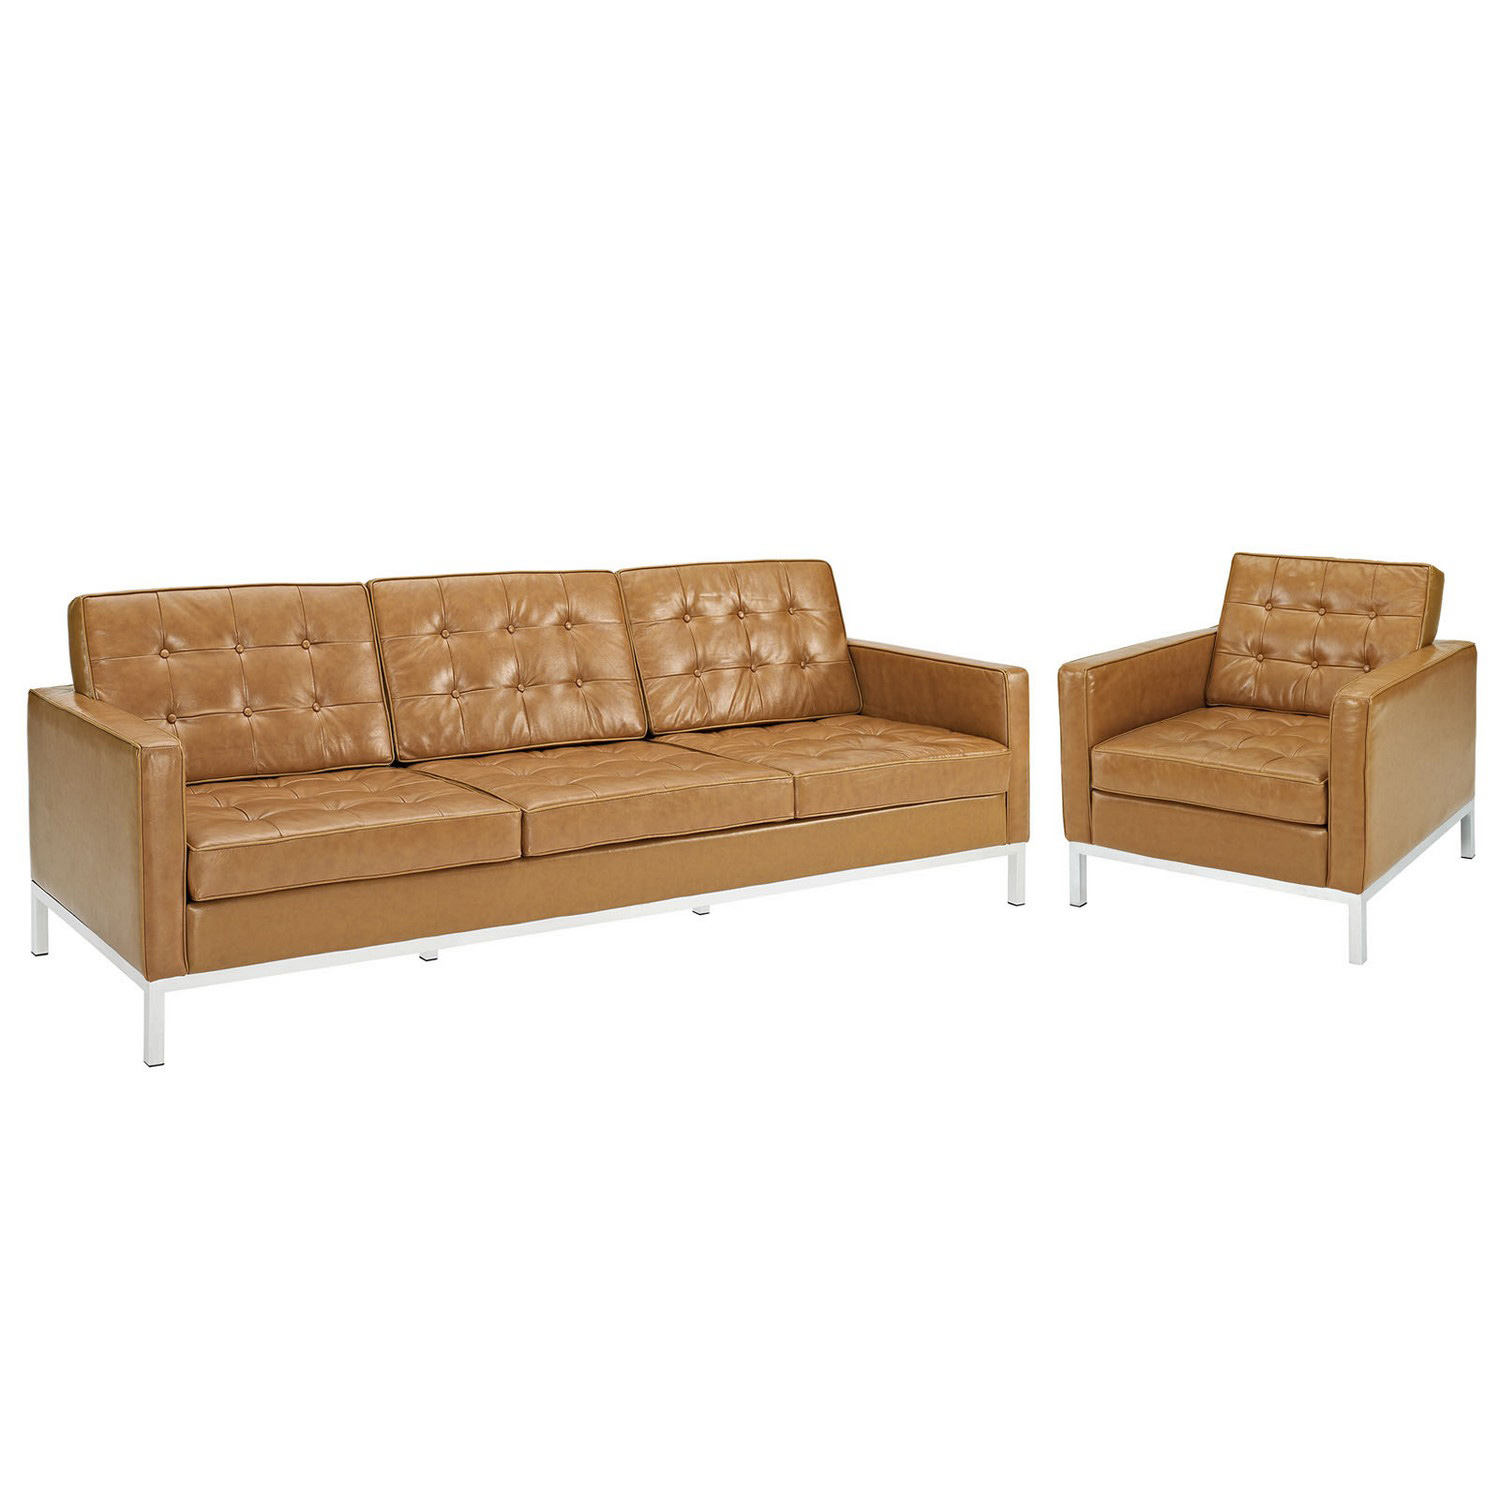 modway loft armchair and sofa leather 2 piece set tan mw eei 1270 tan at. Black Bedroom Furniture Sets. Home Design Ideas